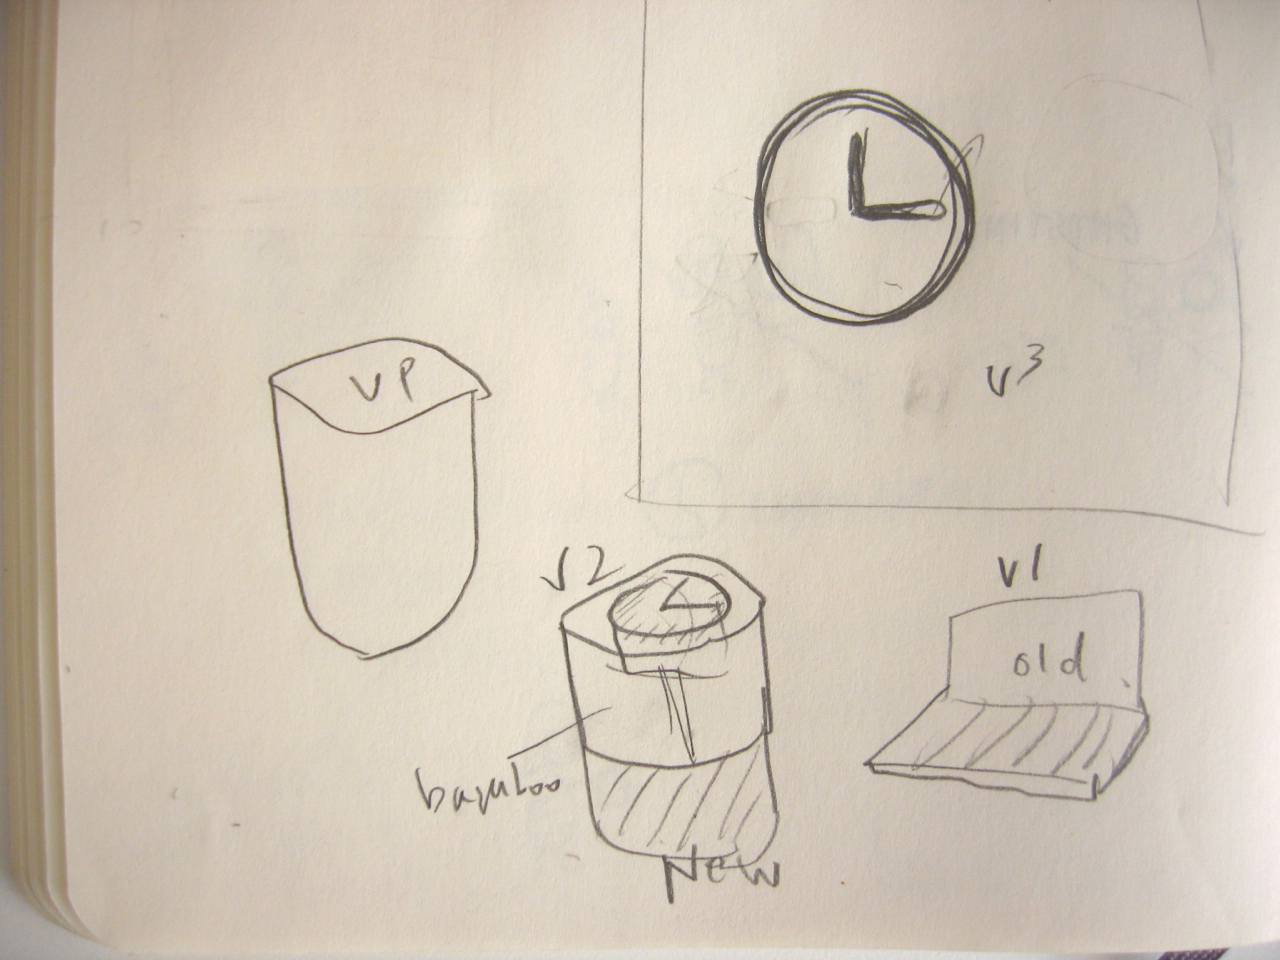 Initial sketch of the analog clock stamp idea